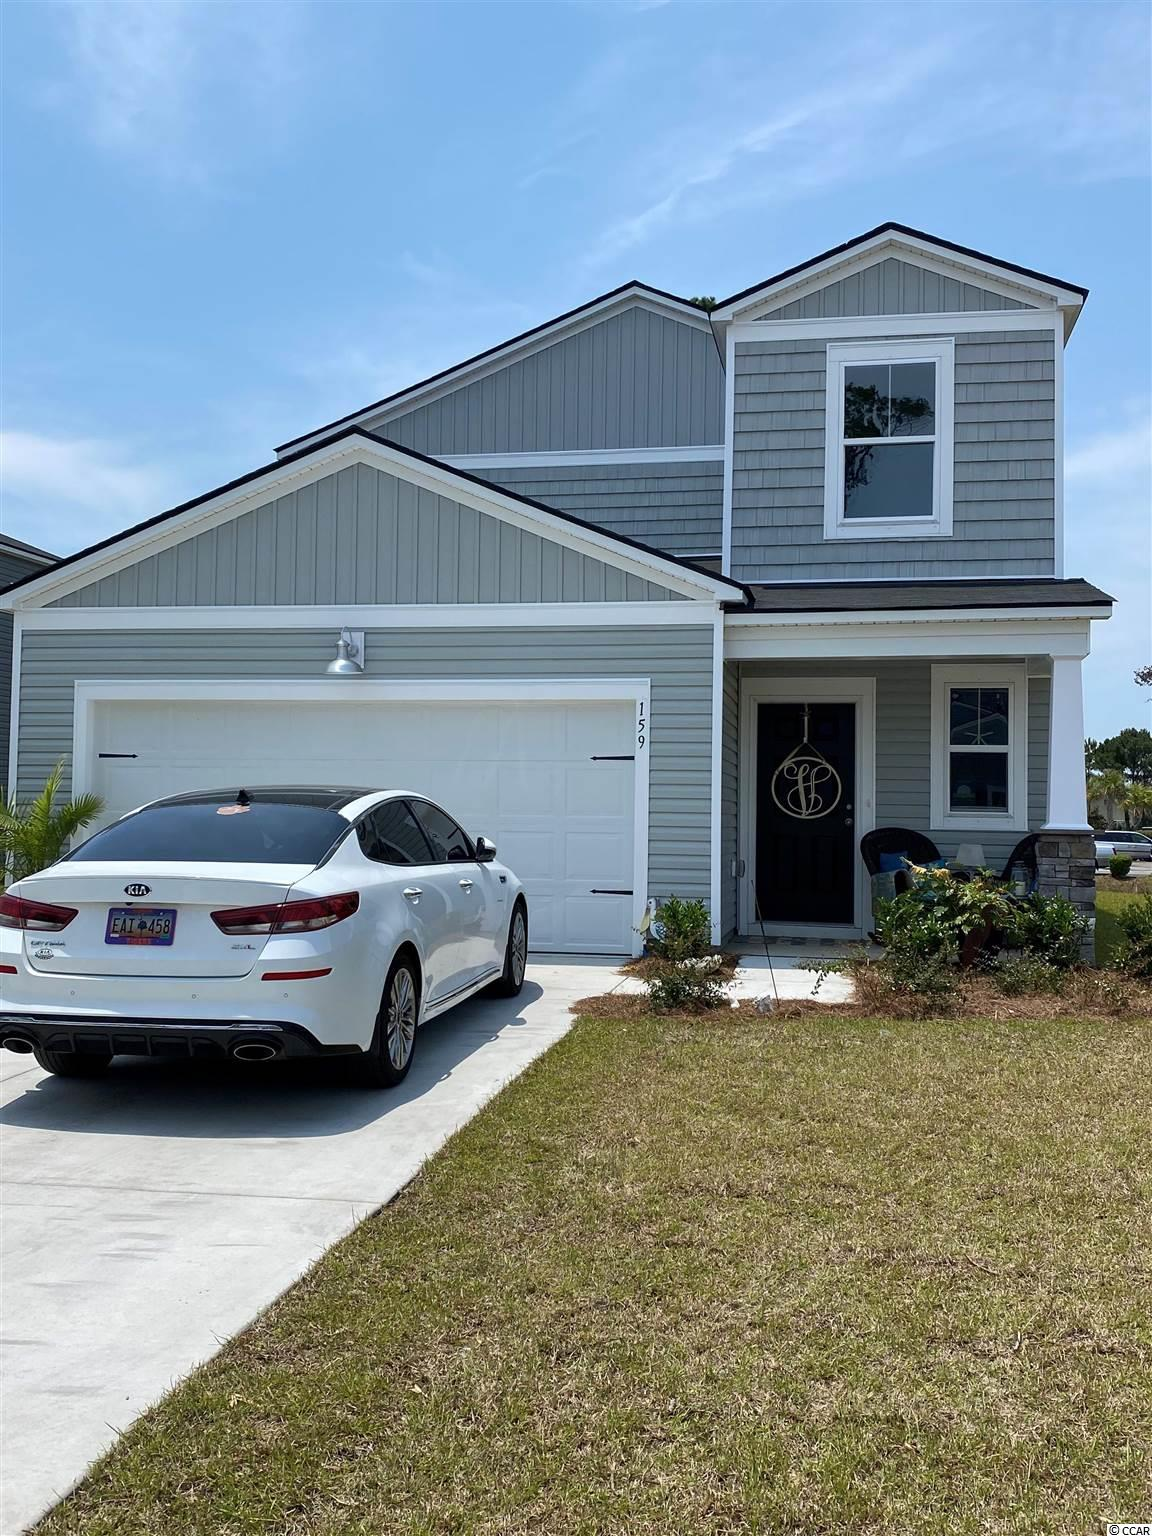 """These pictures are of a """"Similar Home"""", it is a MODEL home with extra options.   Beach Village  community is located in Deerfield. This Columbia is 5 bedroom 2 1/2 bath. This home features Granite kitchen countertops with subway tile. Stainless steel appliances and Laminate flooring. A gas community with a tankless water heater and gas stove.  Low HOA includes Trash pick-up, Cable & Internet. Just a golf cart ride to the beach (1.7 miles)"""